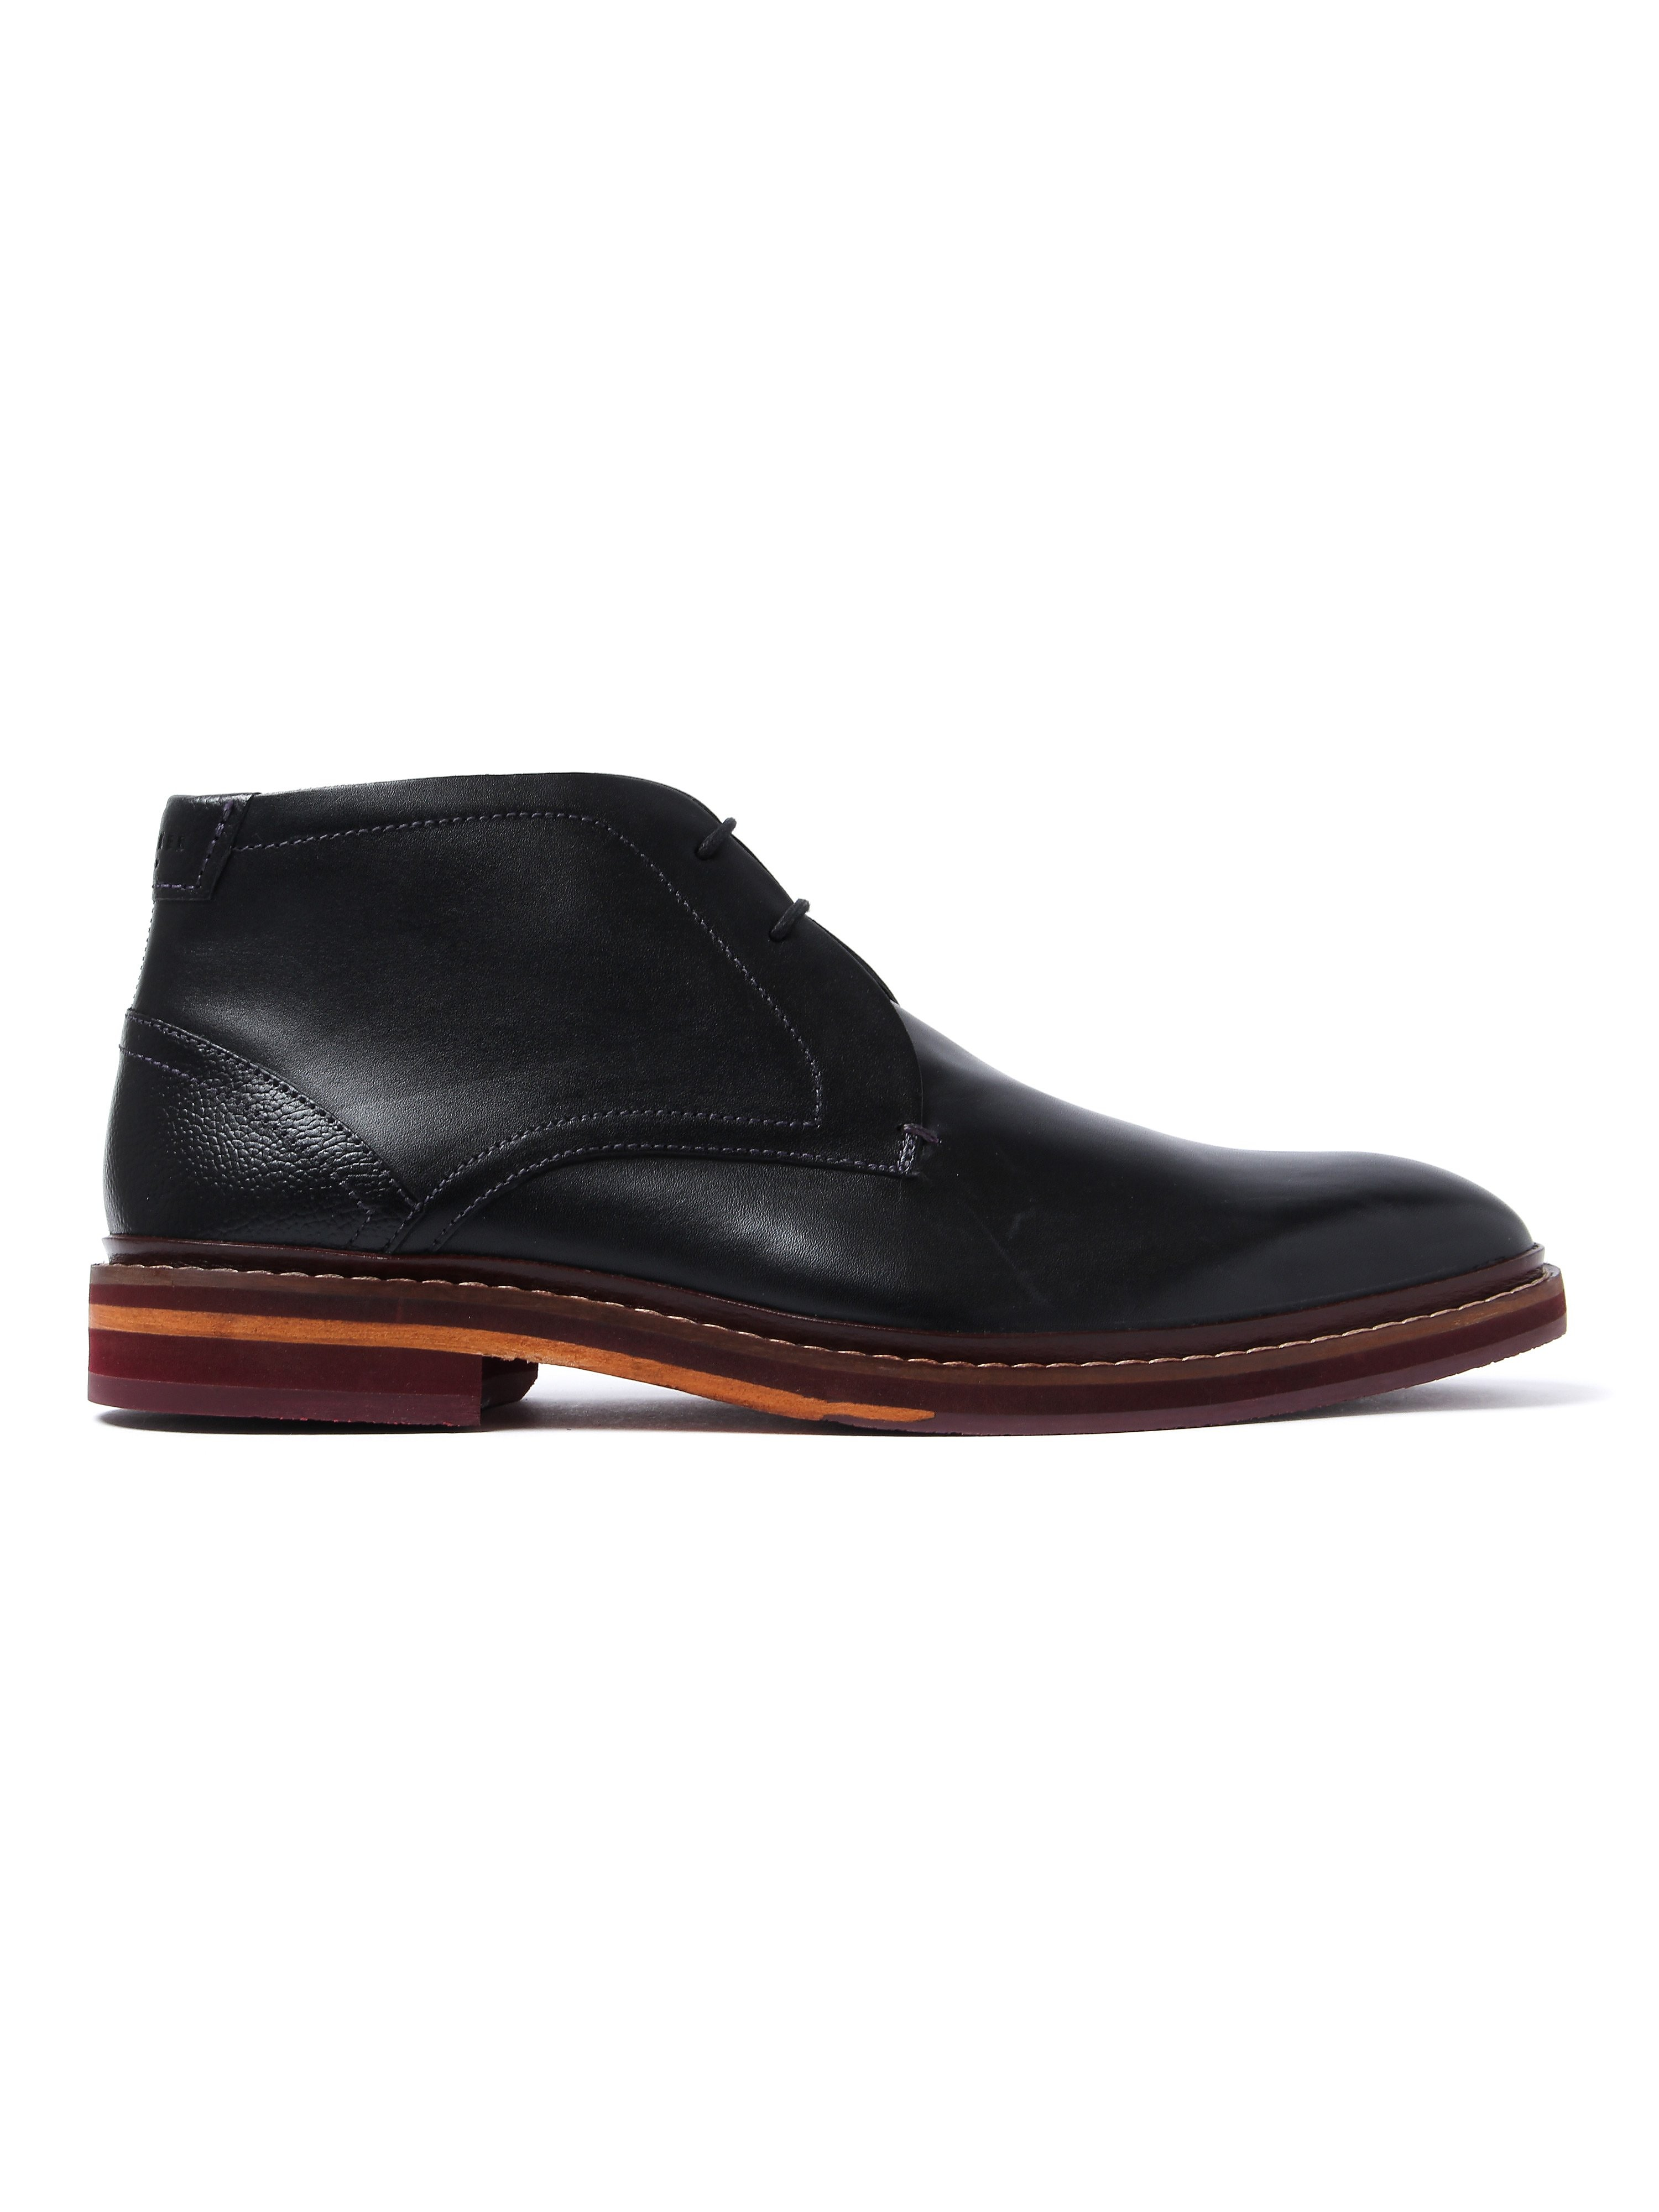 Ted Baker Men's Azzlan Boots - Black Leather